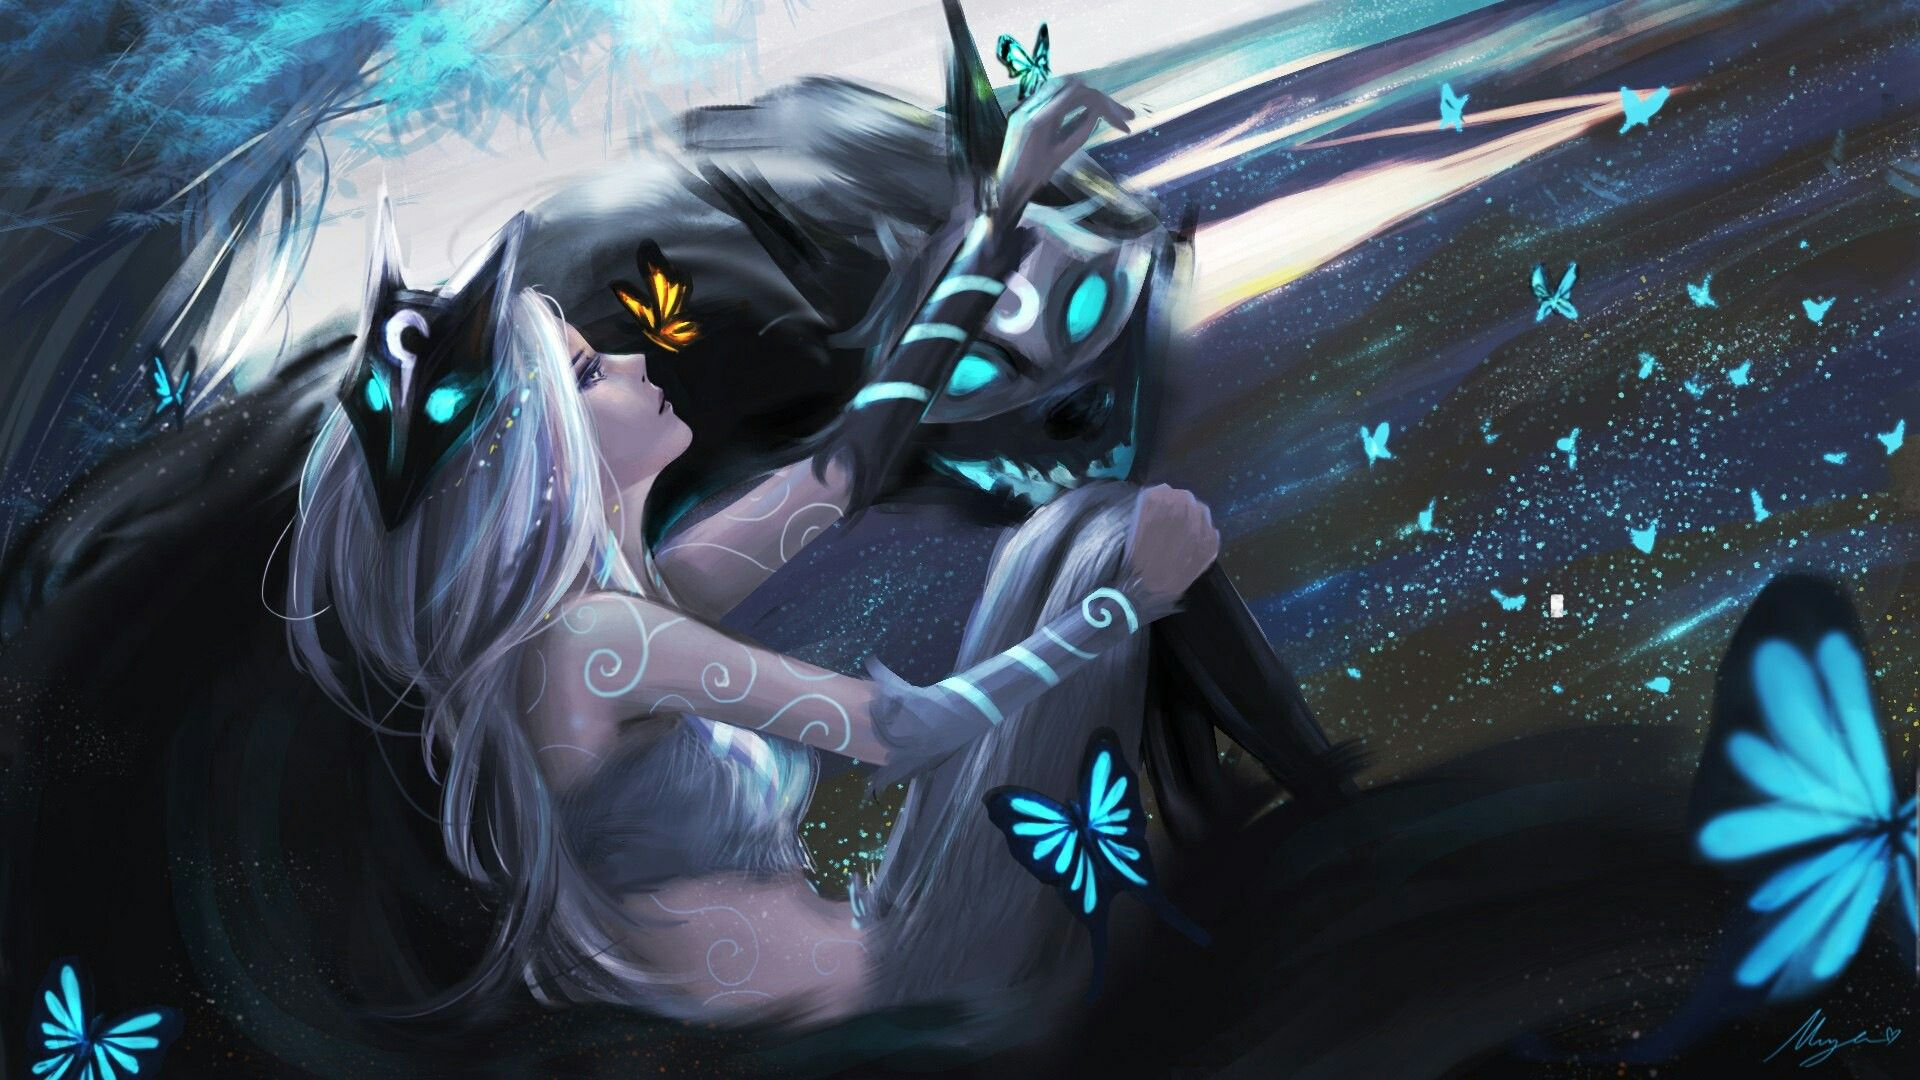 Kindred | LOL (League of Legends) in 2019 | League of ...